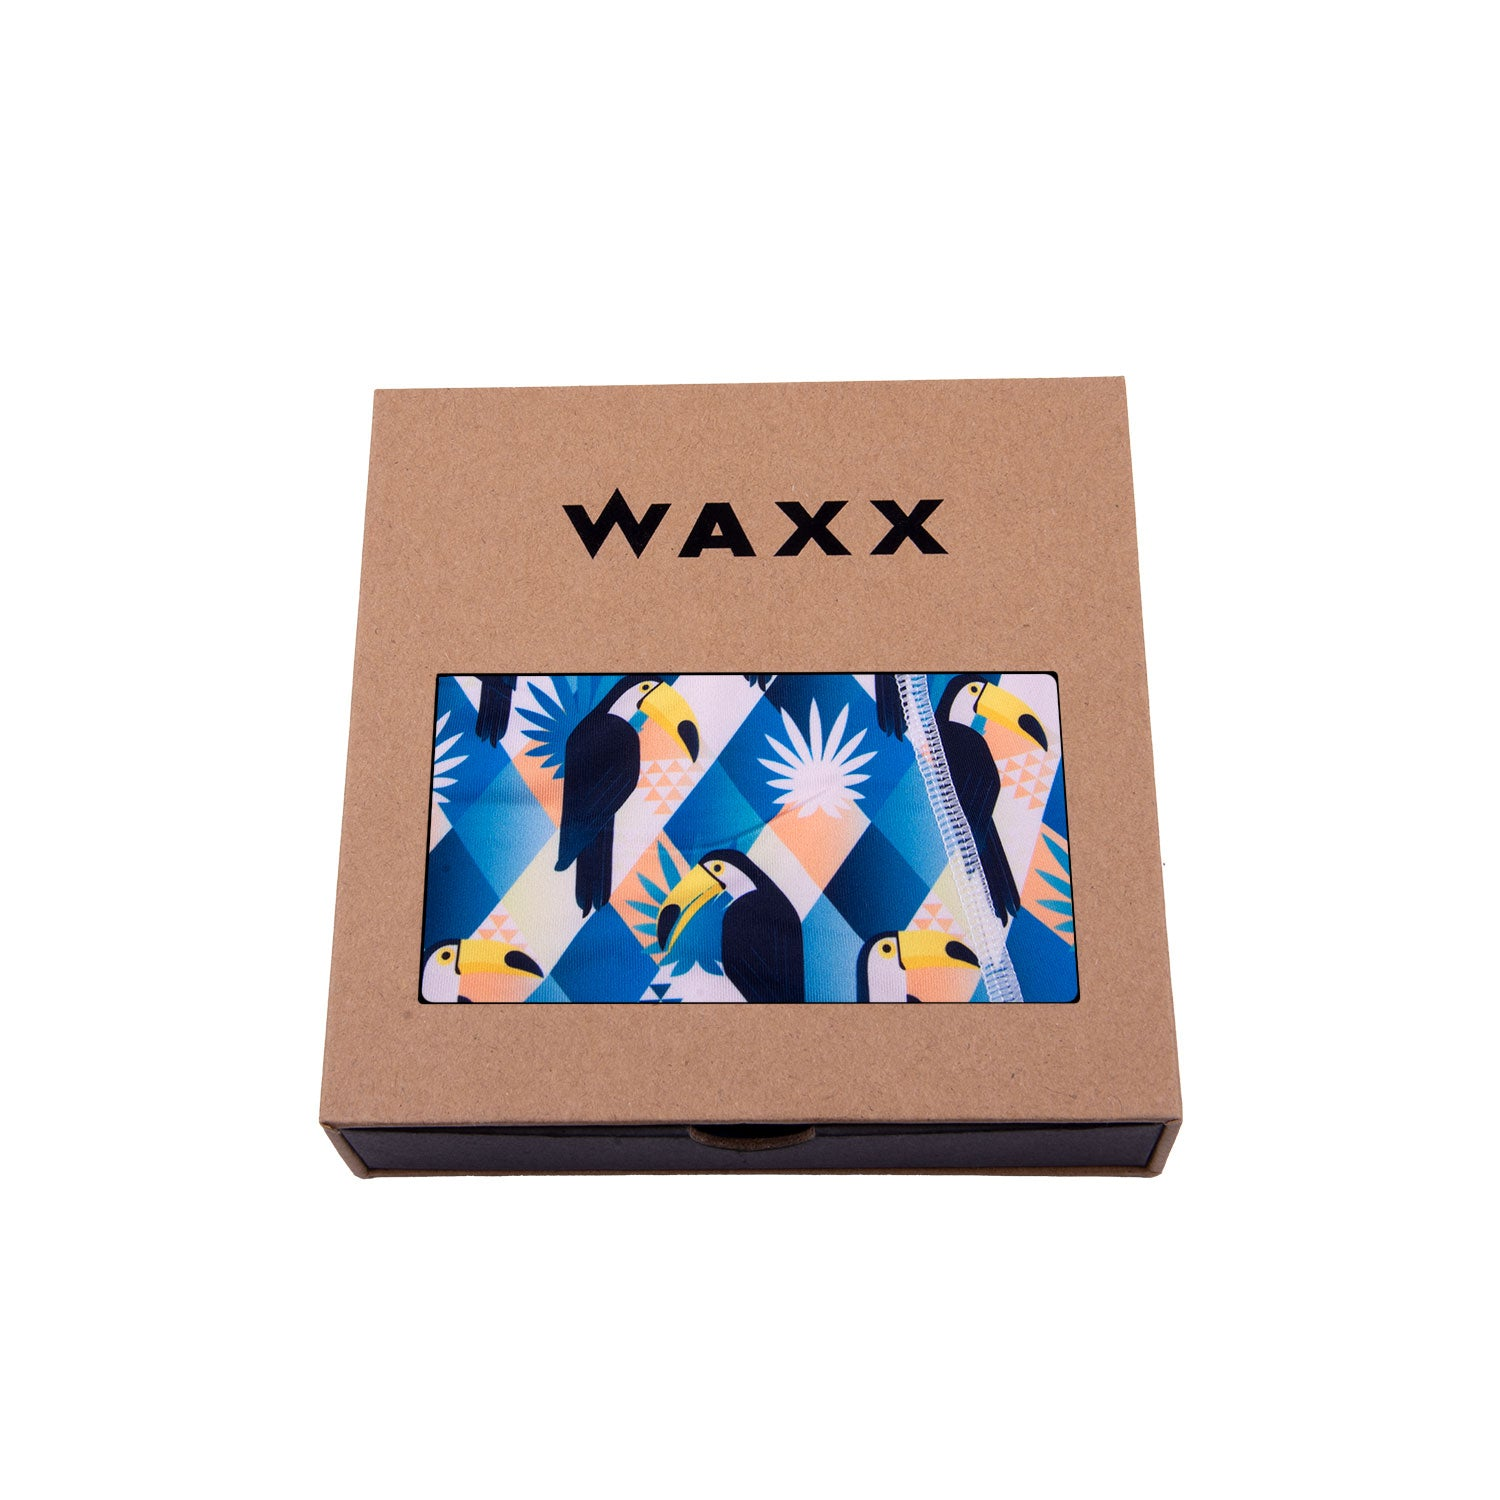 Waxx Men's Trunk Boxer Short Toukis